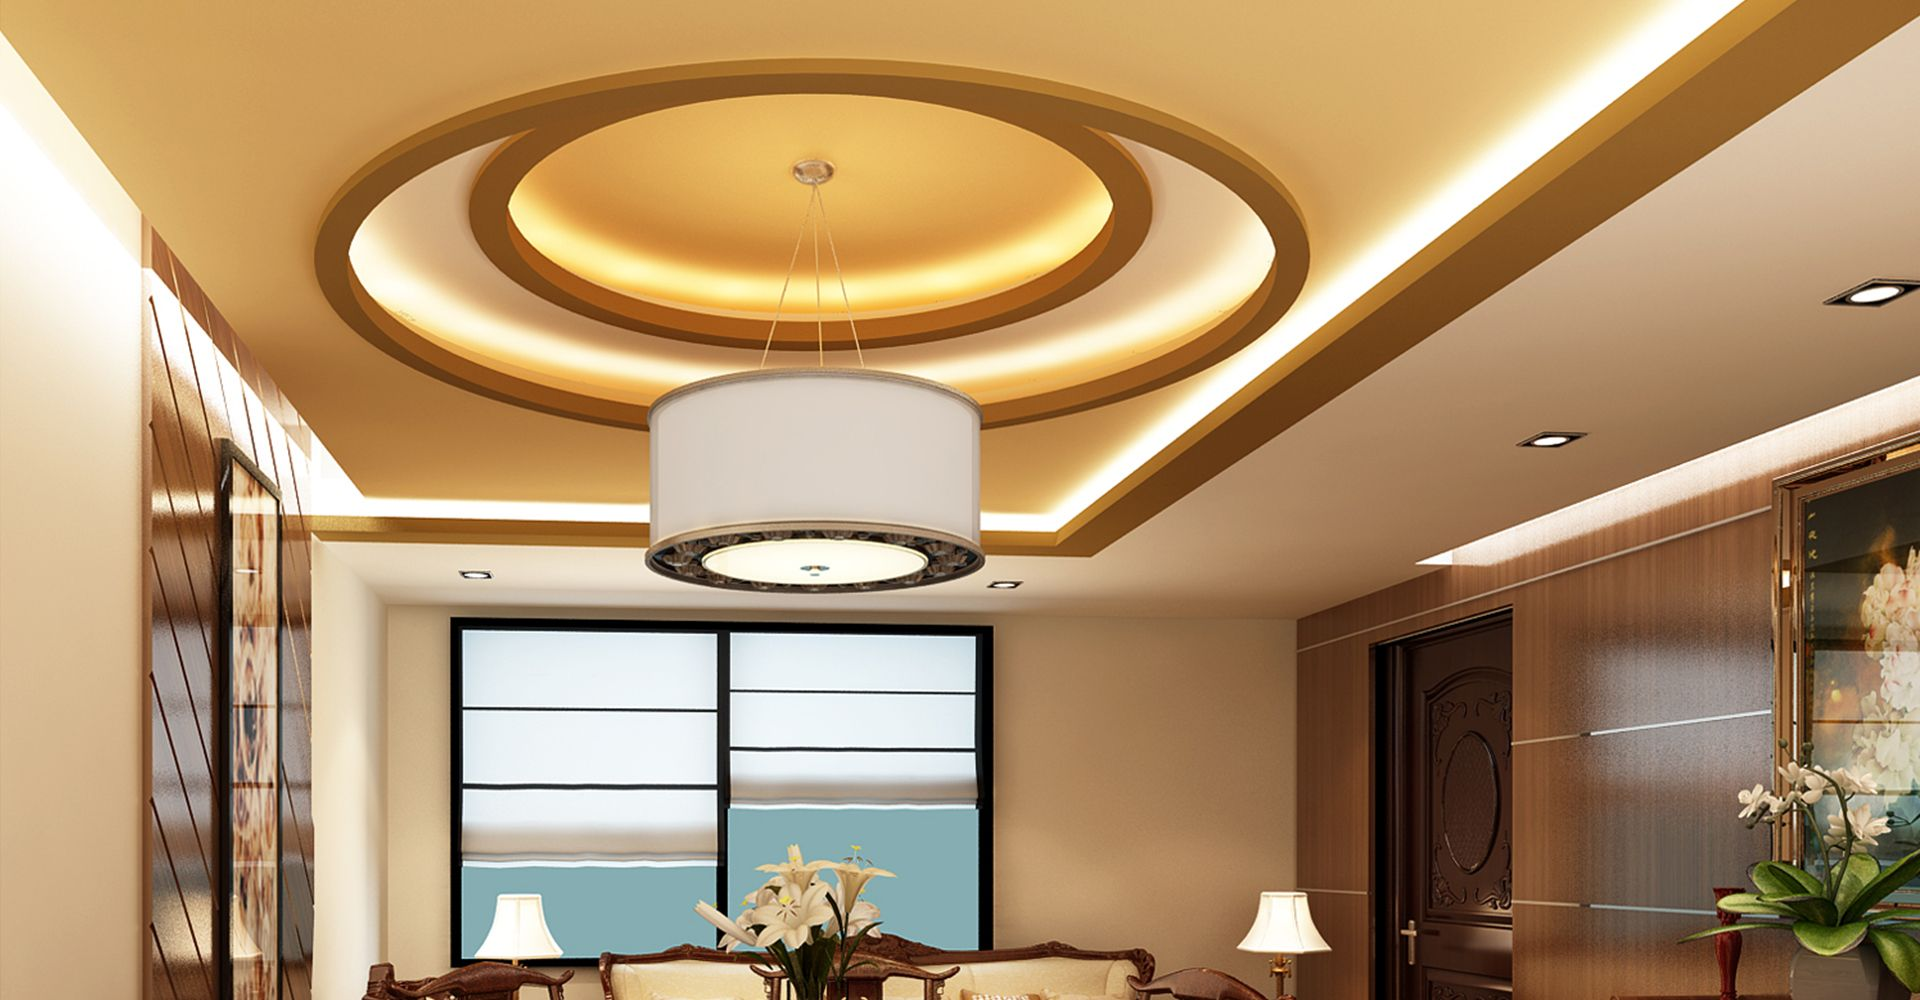 Saint Gobain Gyproc Offers An Innovative Residential Ceiling Design Ideas  For Various Room Such As Living Room, Bed Room, Kids Room And Other Spaces. Part 43